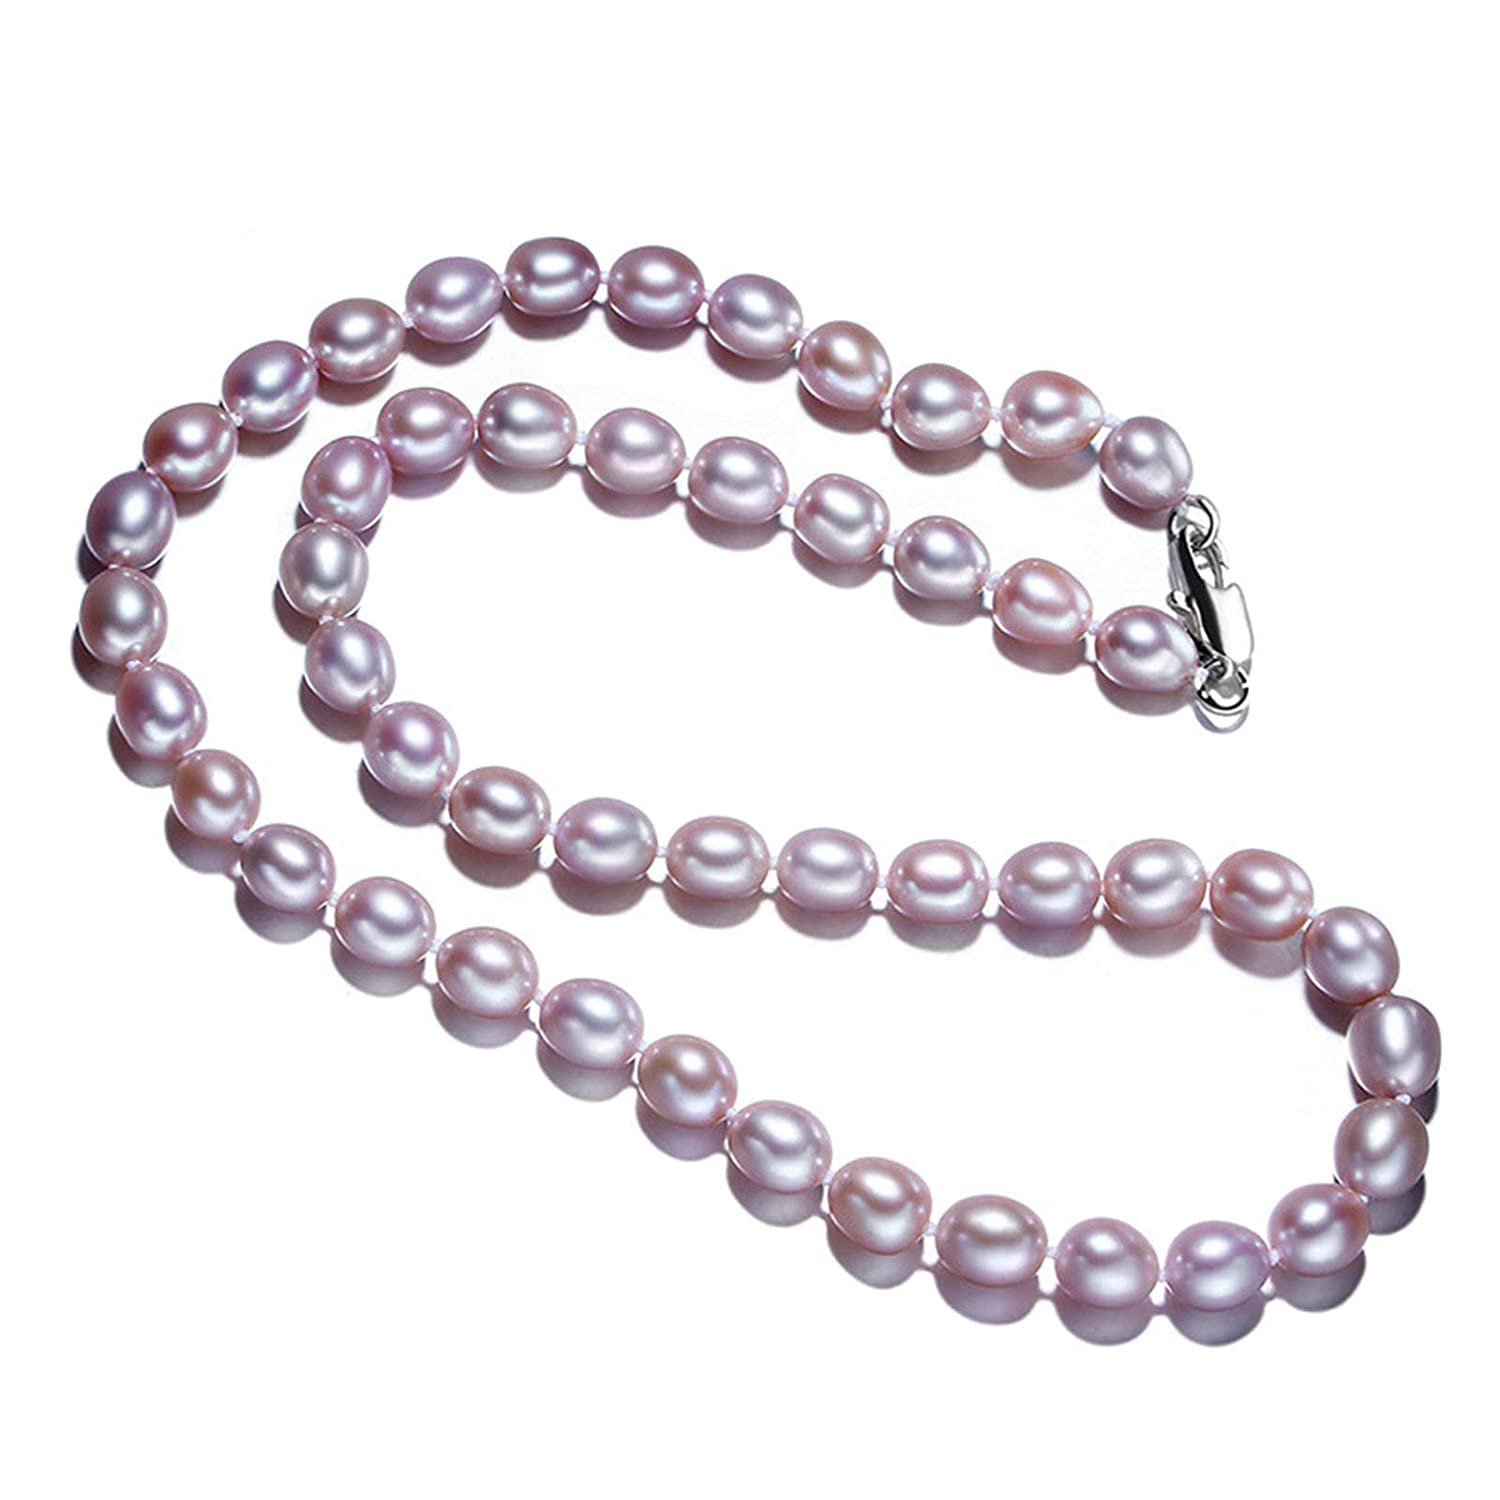 Aooaz Gold Plated Necklace Women Girls Droplet Pearl Necklace Purple Wedding 45CM